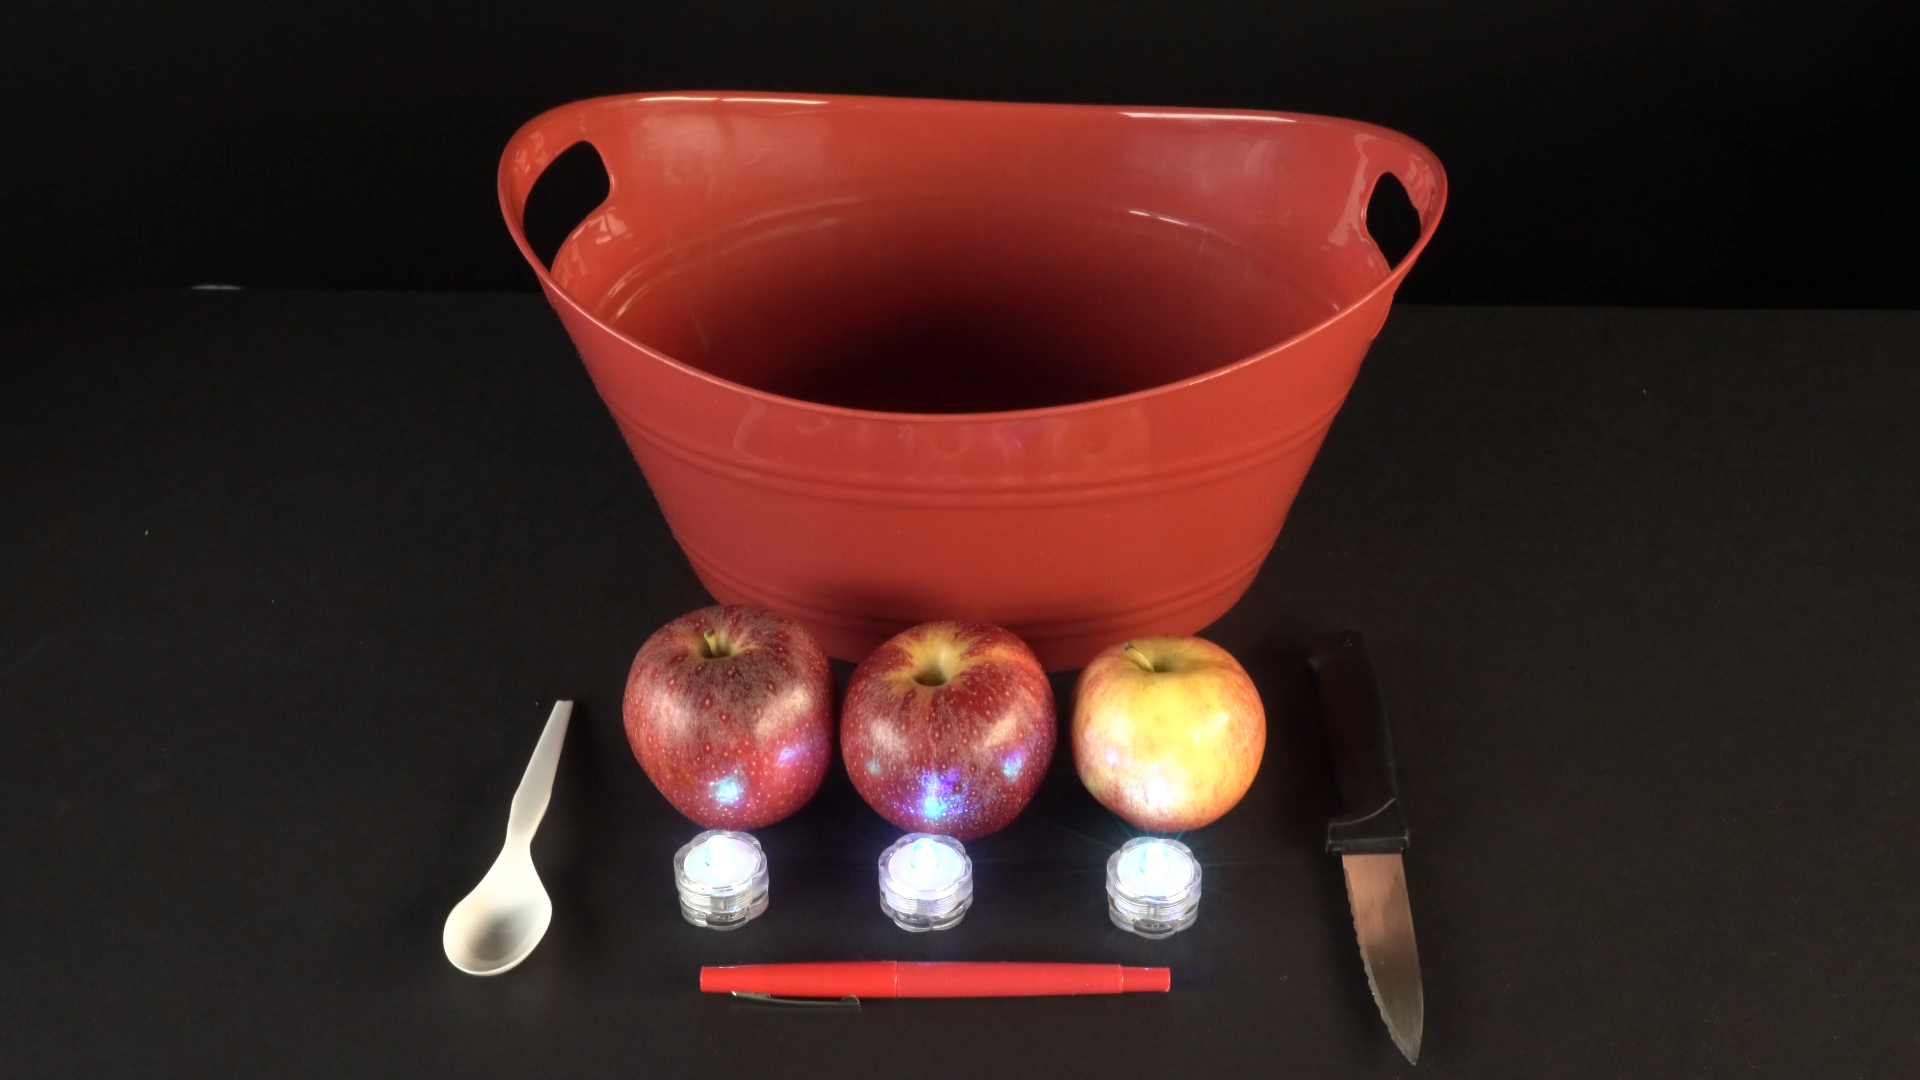 Halloween crafts with color-changing led tea lights - floating apples materials